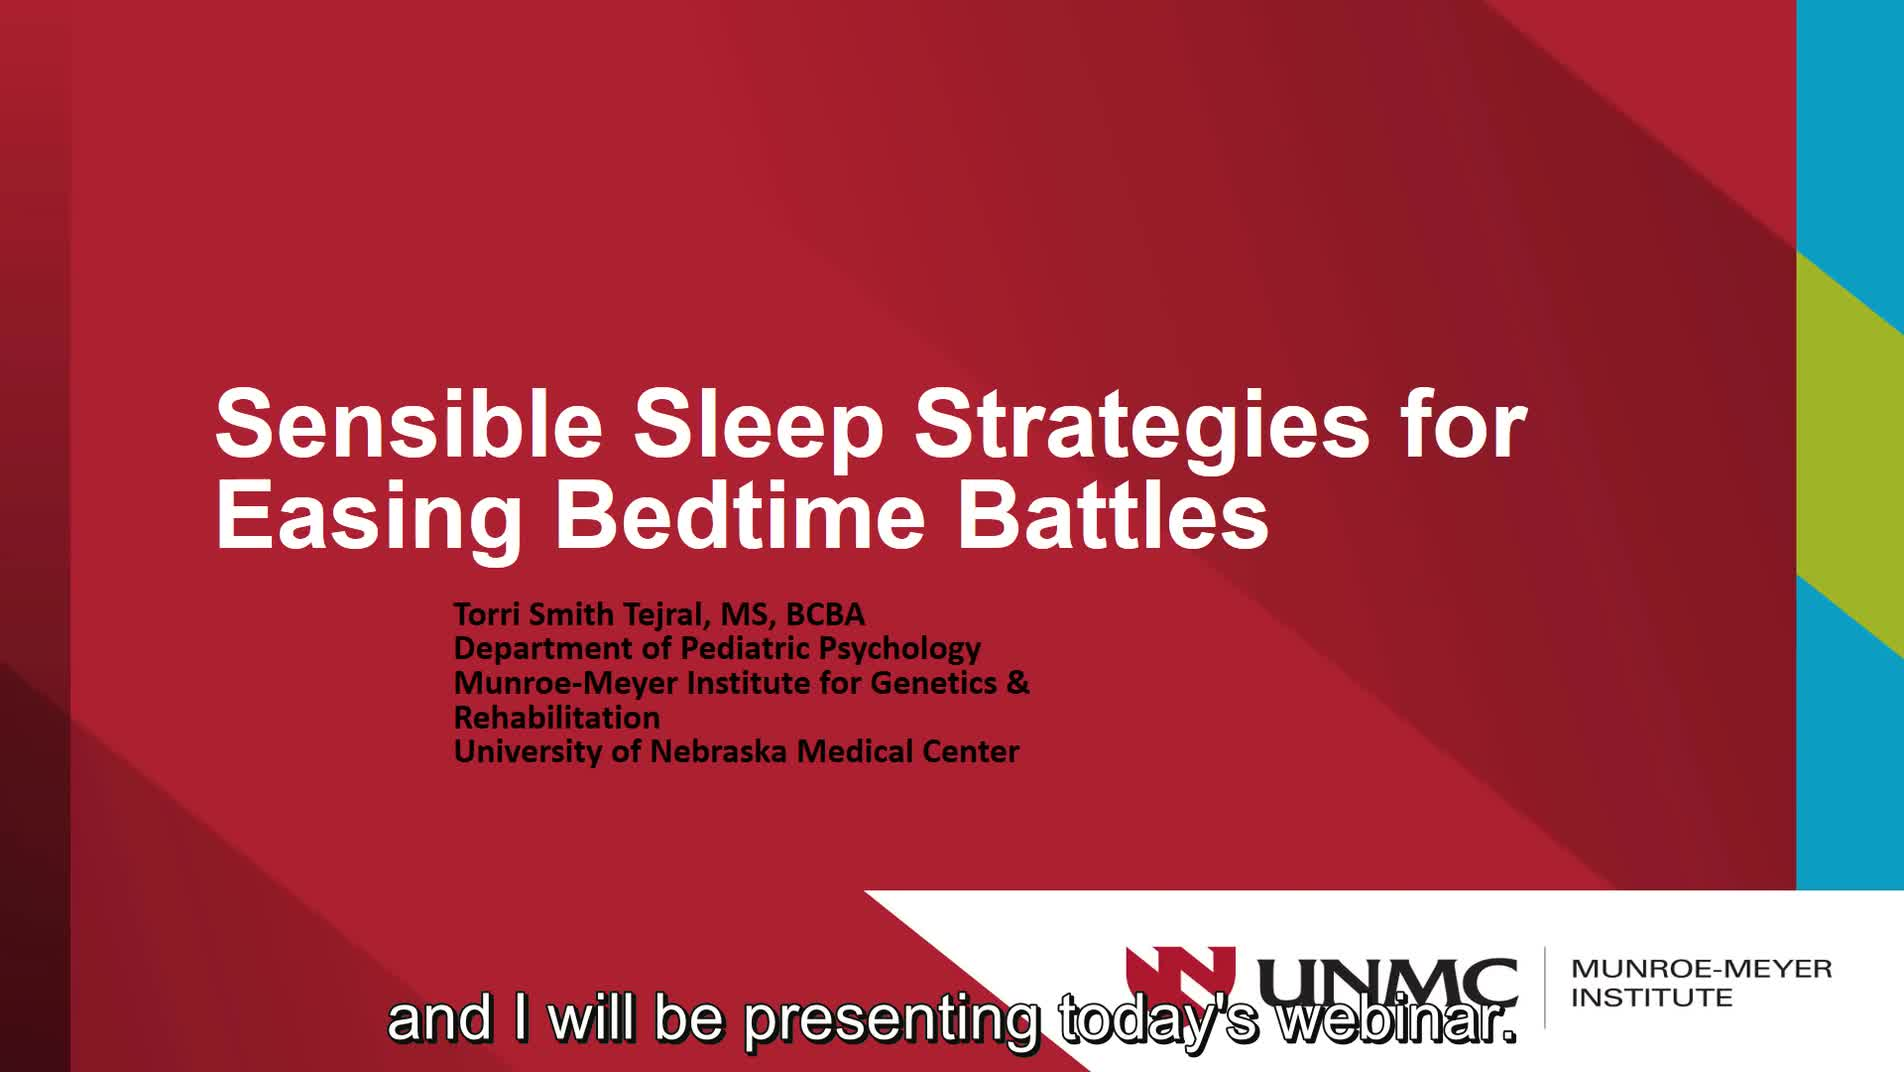 Sensible Sleep Strategies